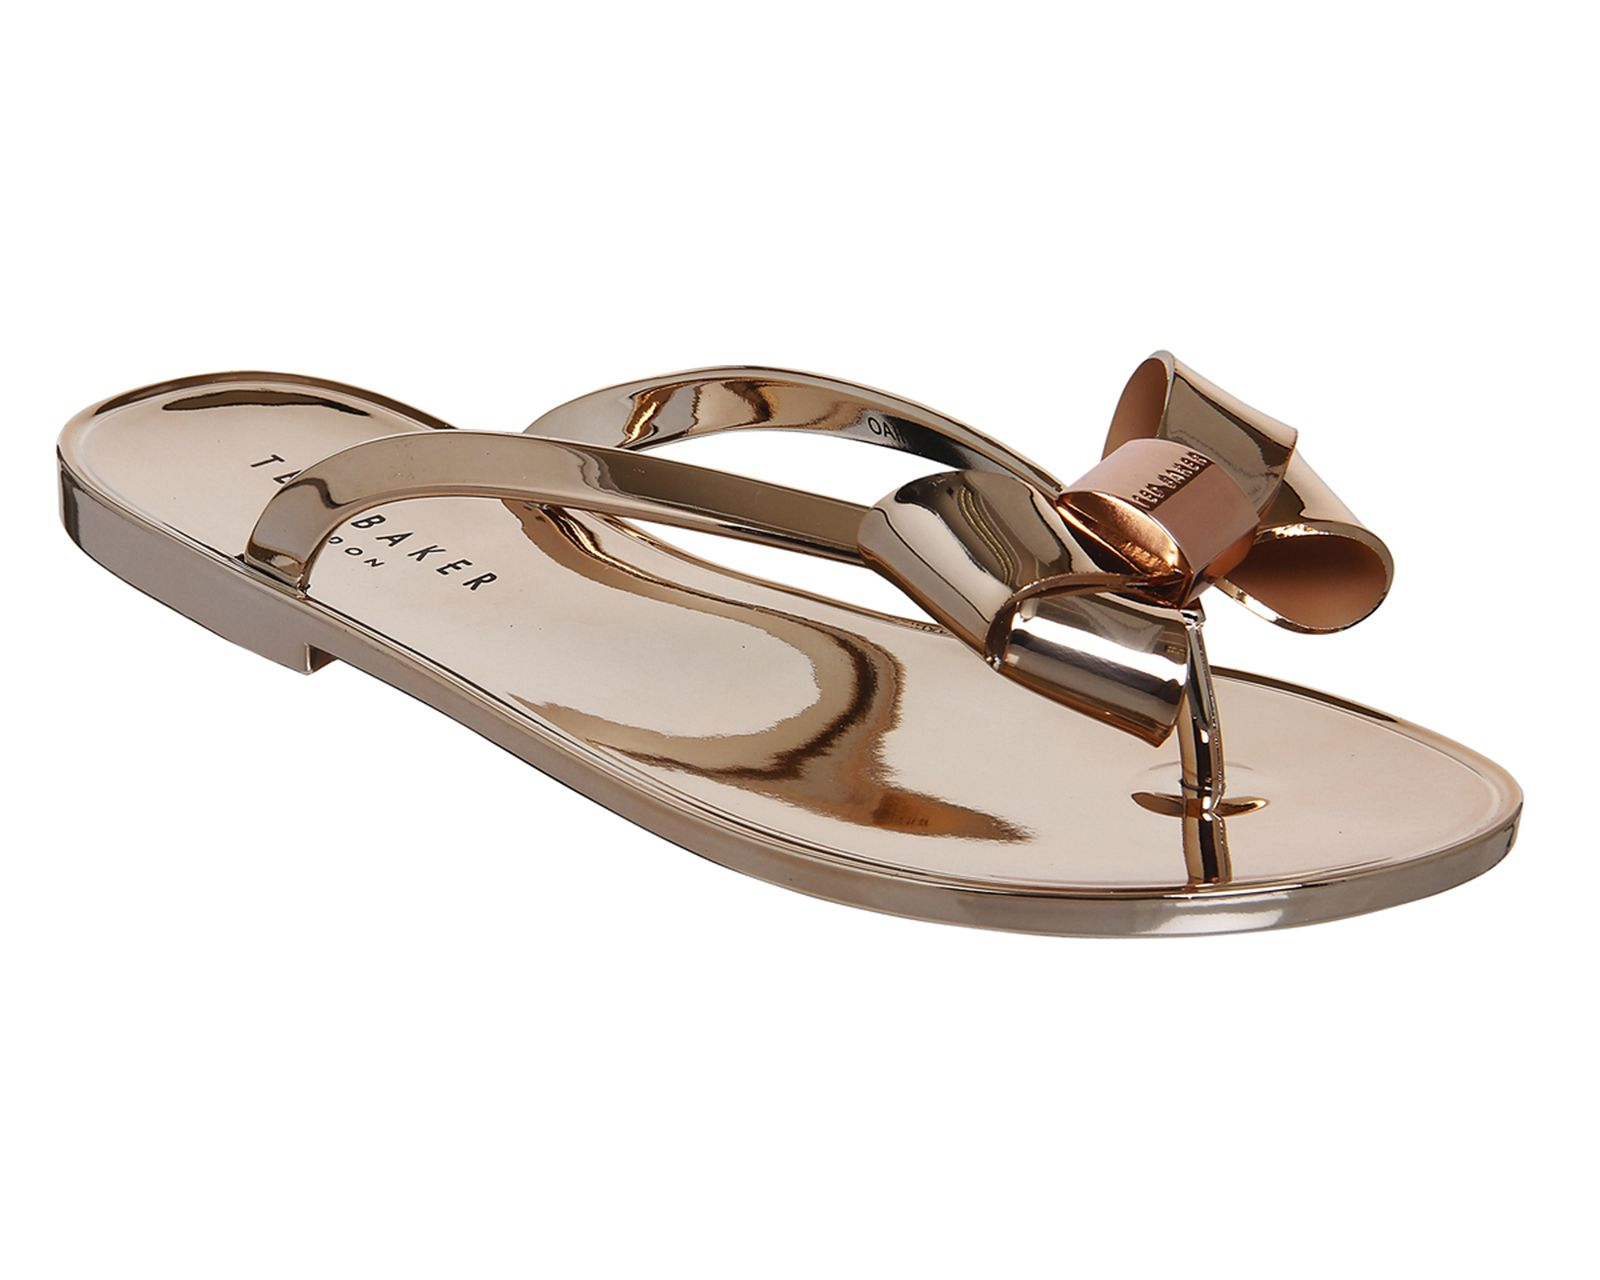 eee2d3ba3 Buy Rose Gold Exclusive Ted Baker Ettiea Flip Flops from OFFICE.co ...